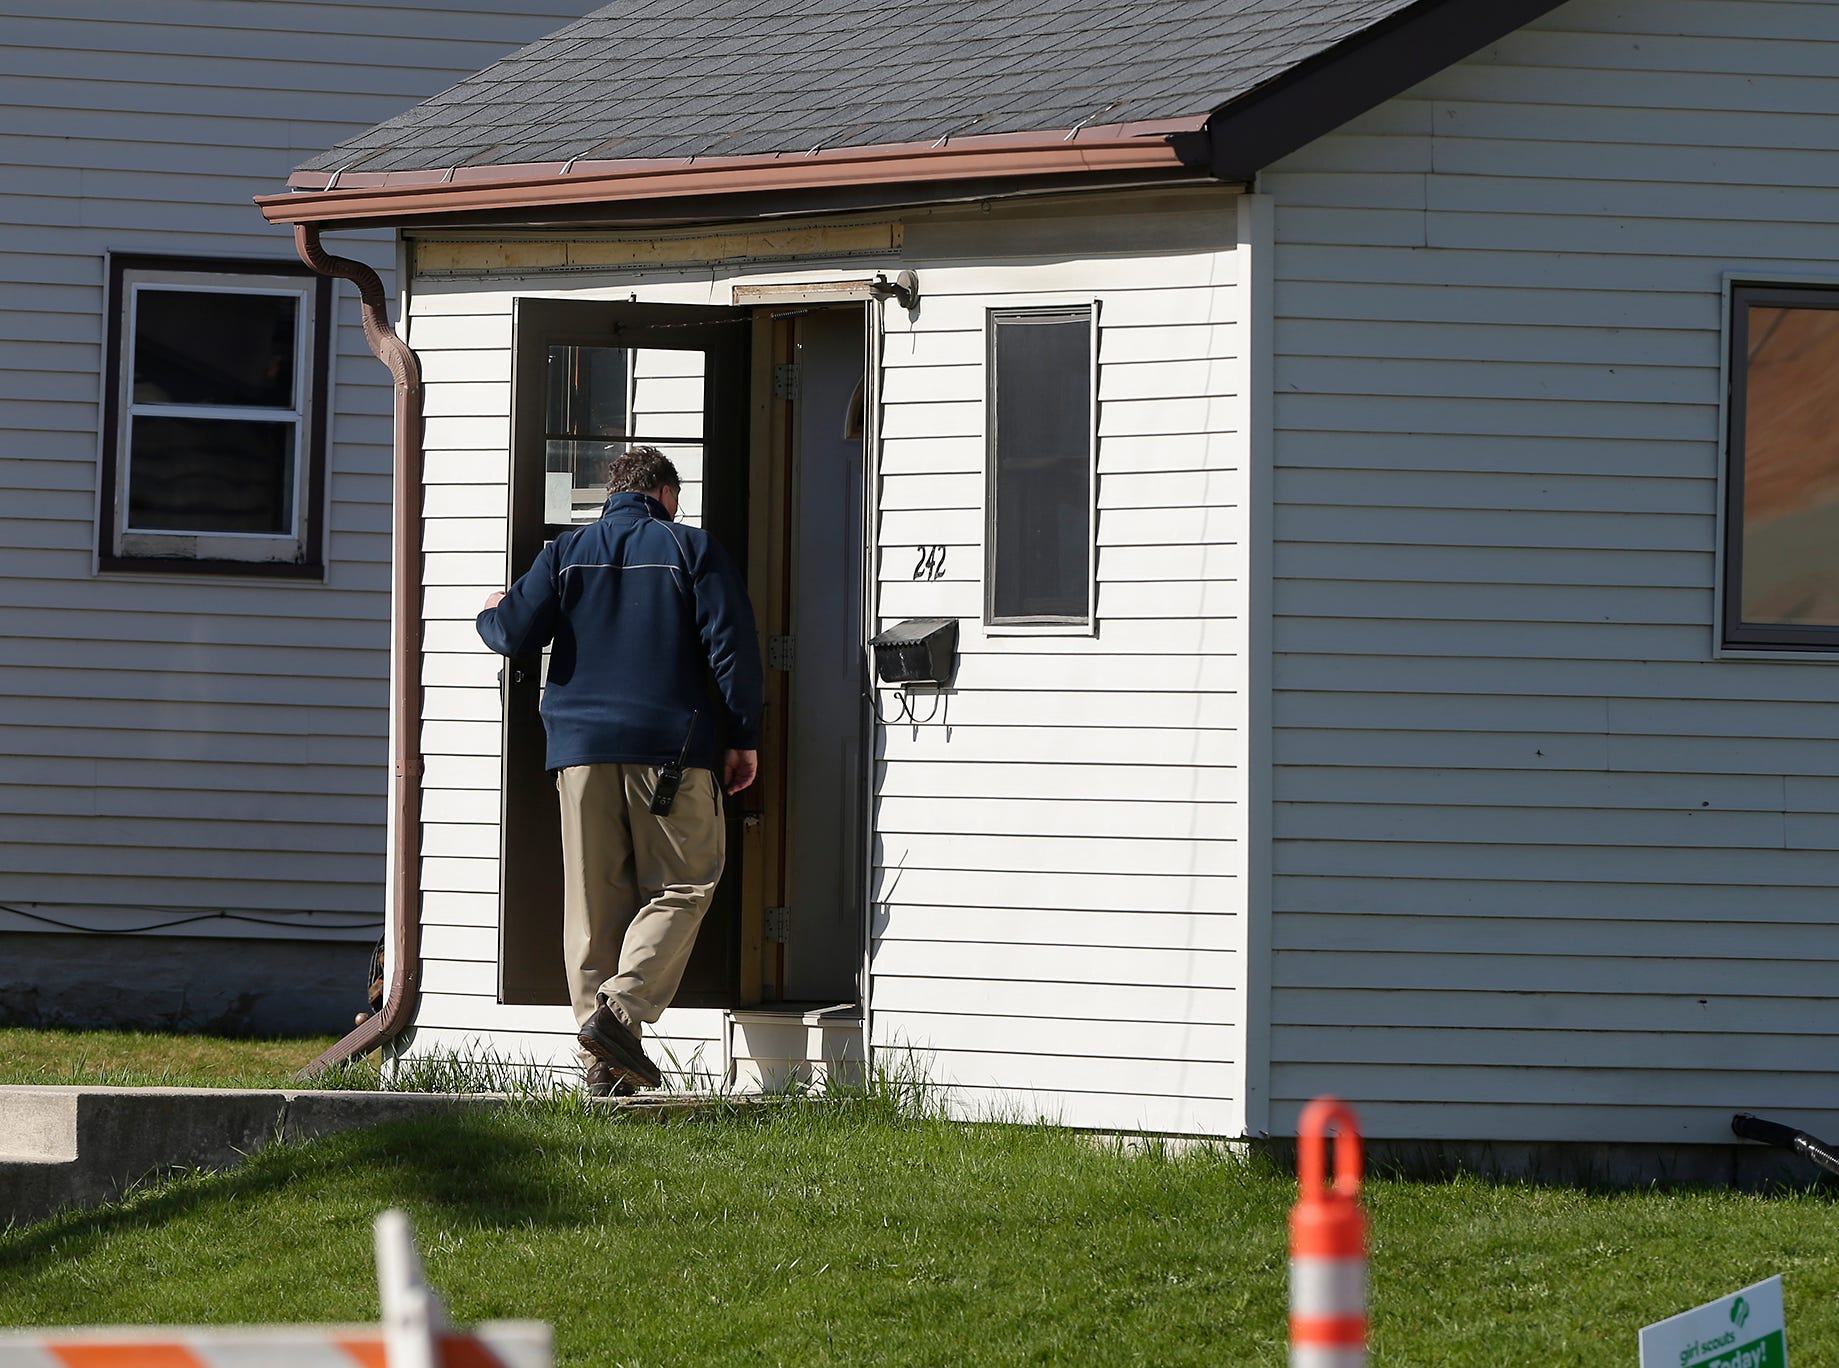 The City of Fond du Lac Police Department investigates possible bullet holes in a house Friday, April 26, 2019 at 242 Morris Street in the City of Fond du Lac, Wis. Doug Raflik/USA TODAY NETWORK-Wisconsin